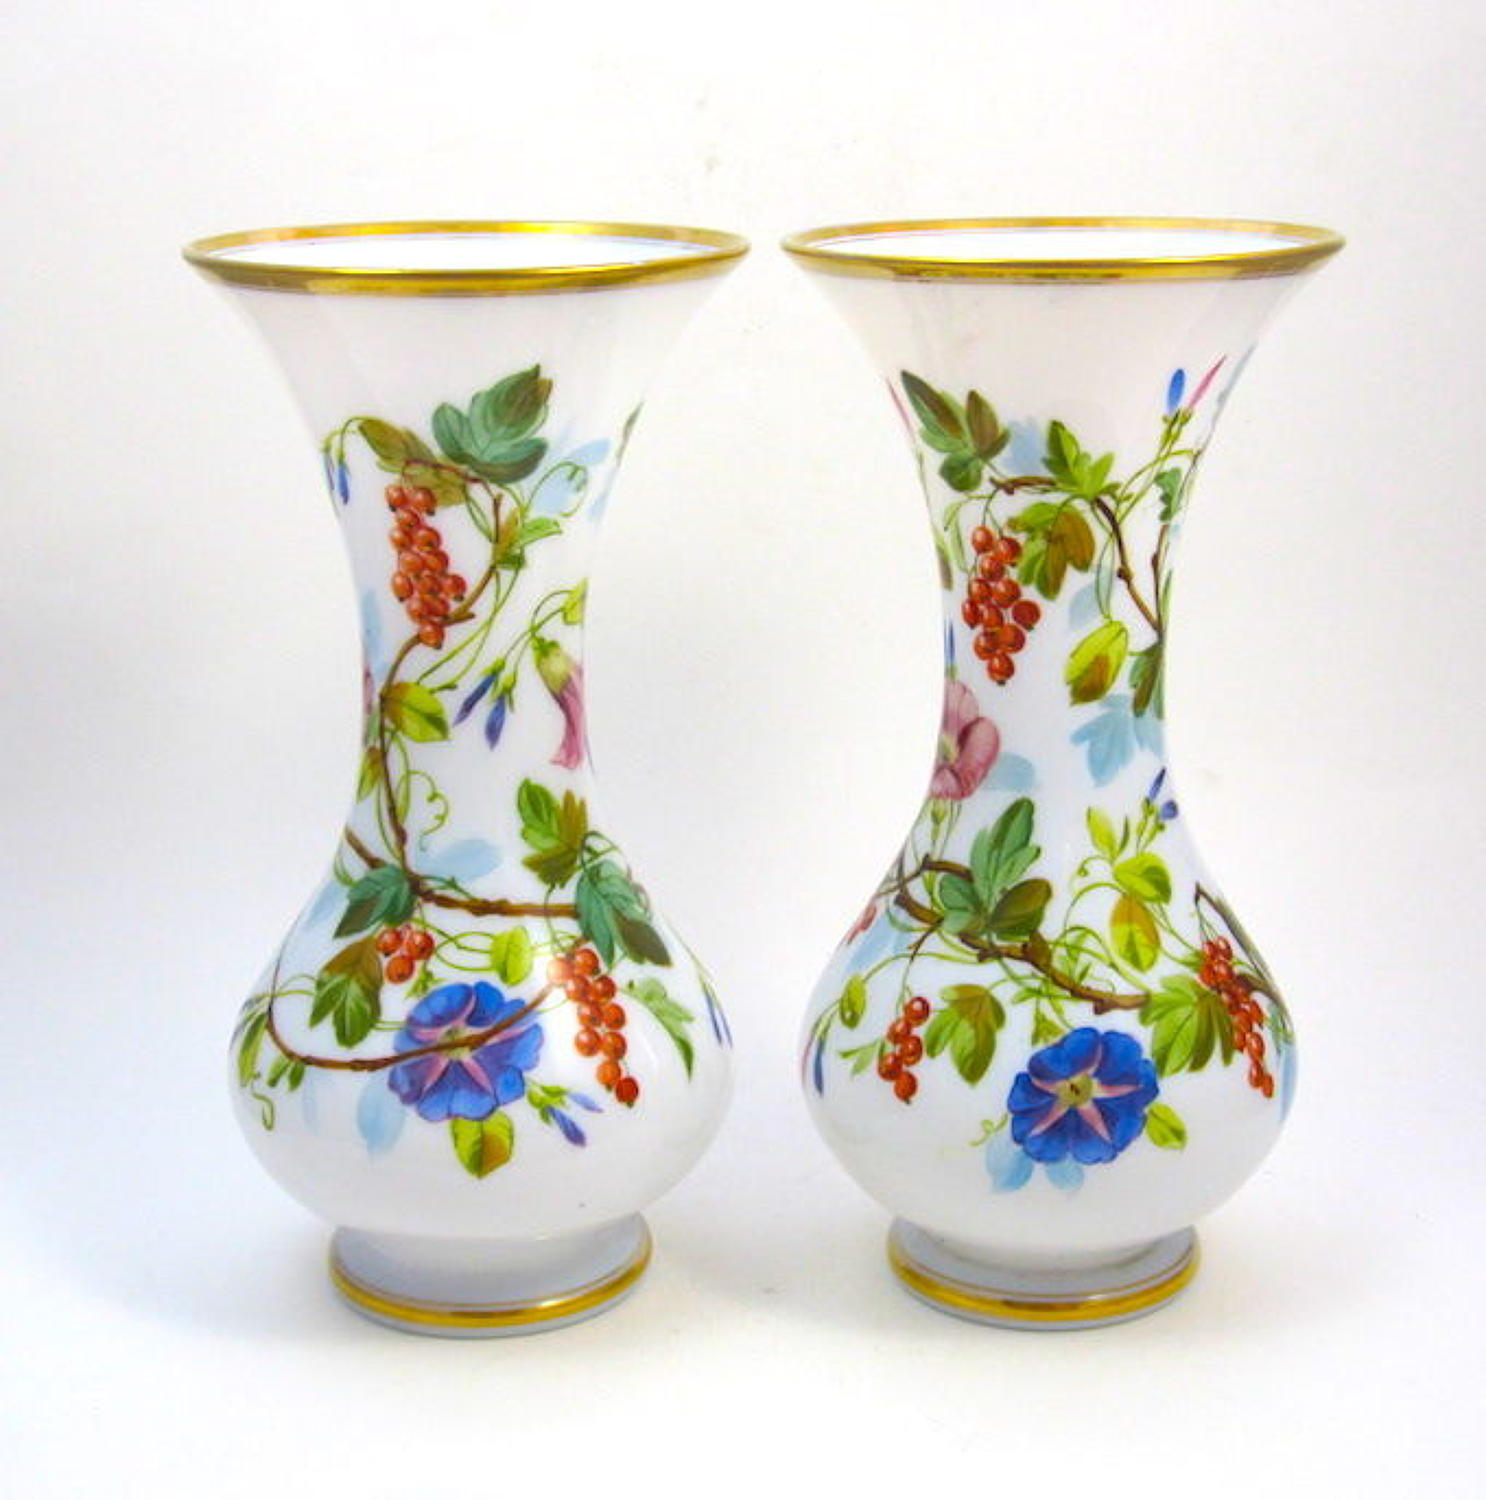 Pair of Antique French Baccarat Opaline Glass Vases